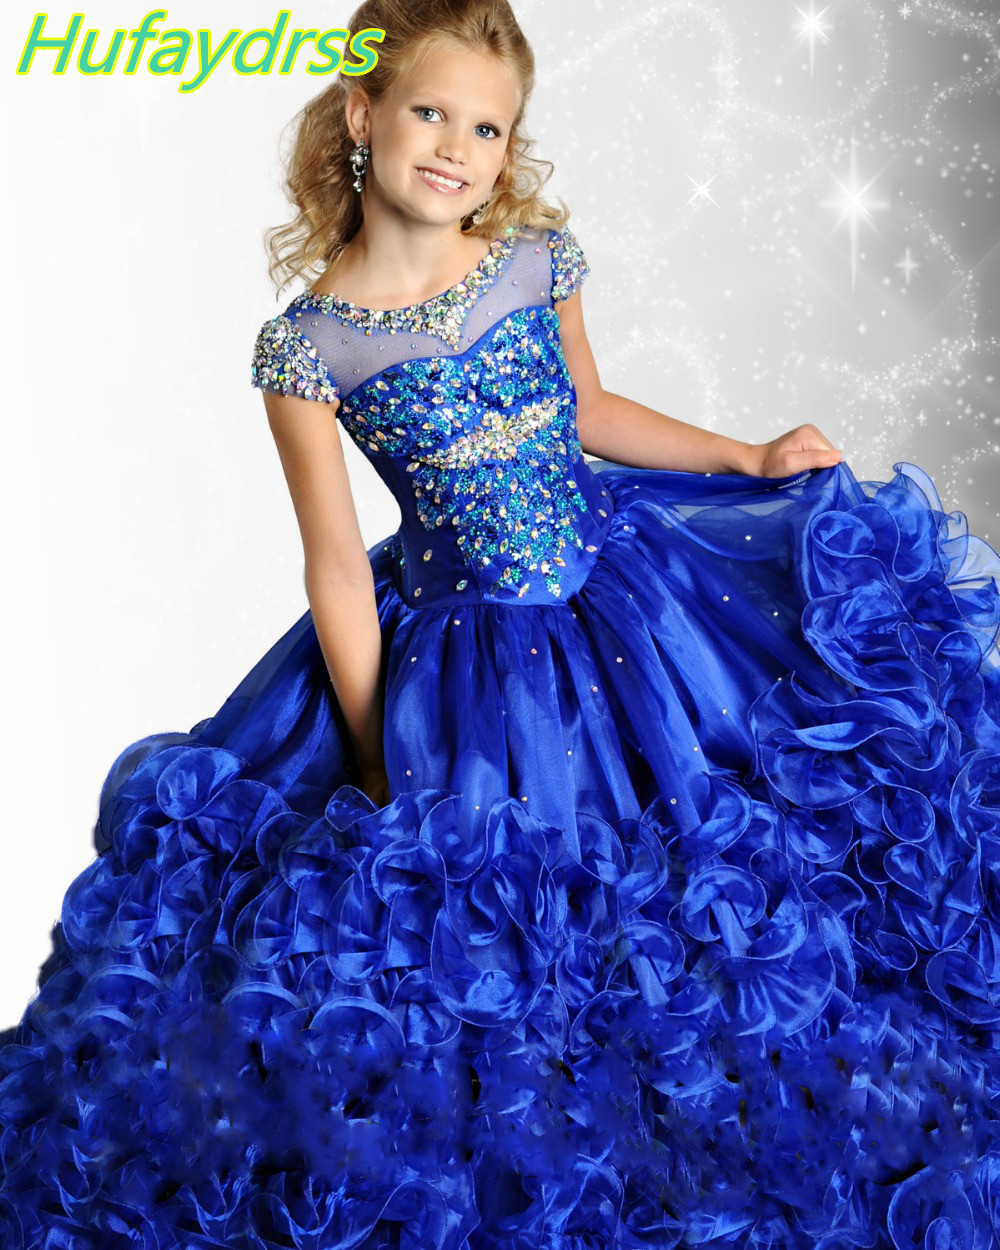 2017 Charming Royal Blue Ball Gown Girls Pageant Dresses ...  2017 Charming R...